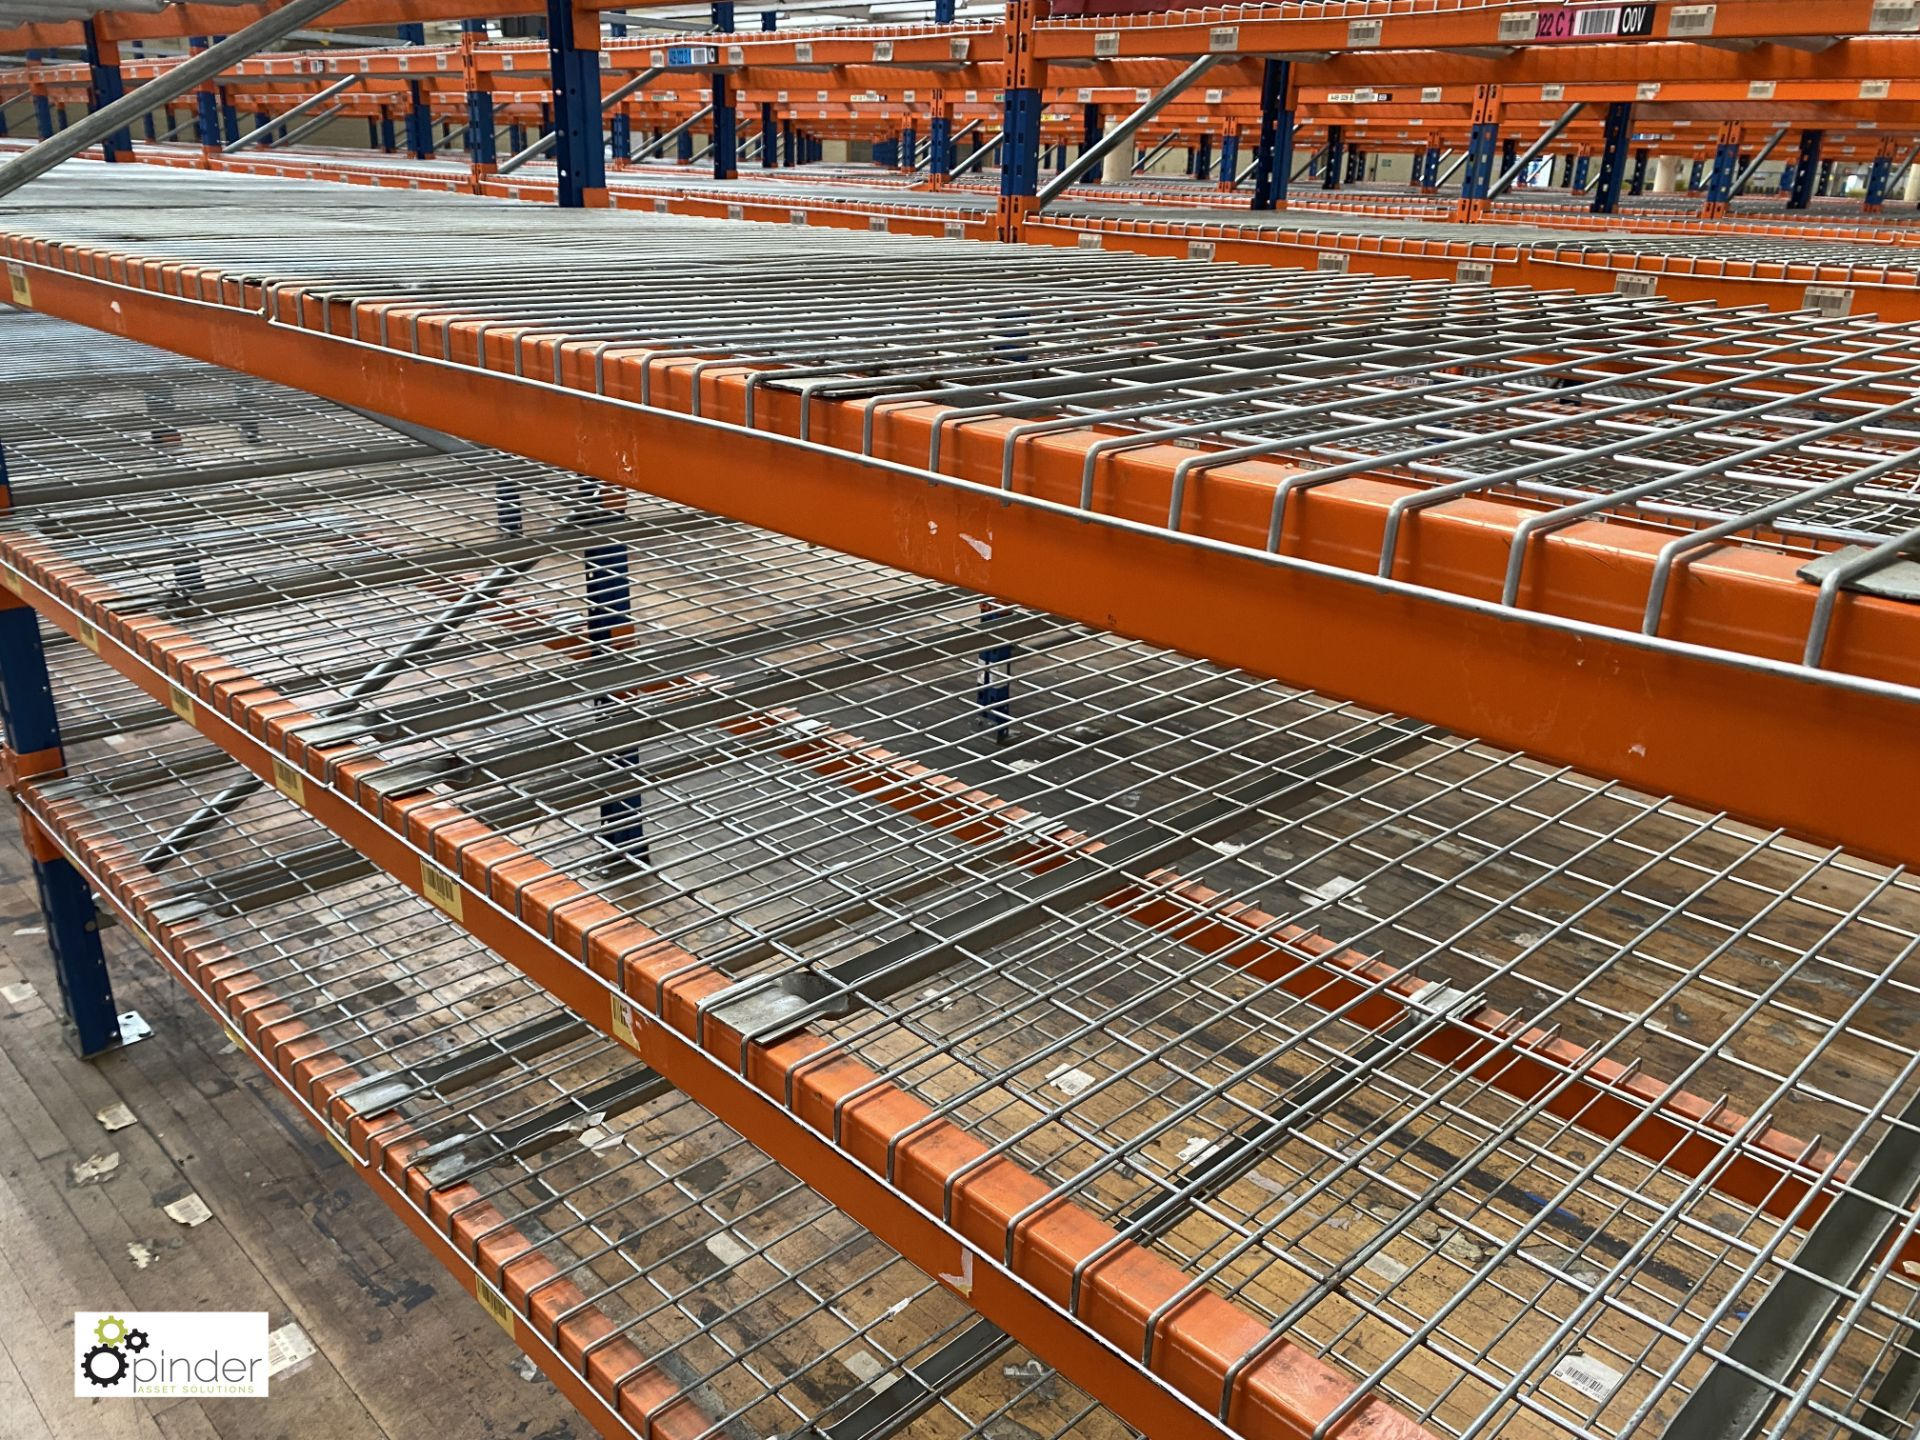 8 bays PSS 2K85 16 boltless Stock Racking, comprising 9 uprights 2400mm x 1200mm, 64 beams 2700mm, - Image 4 of 5